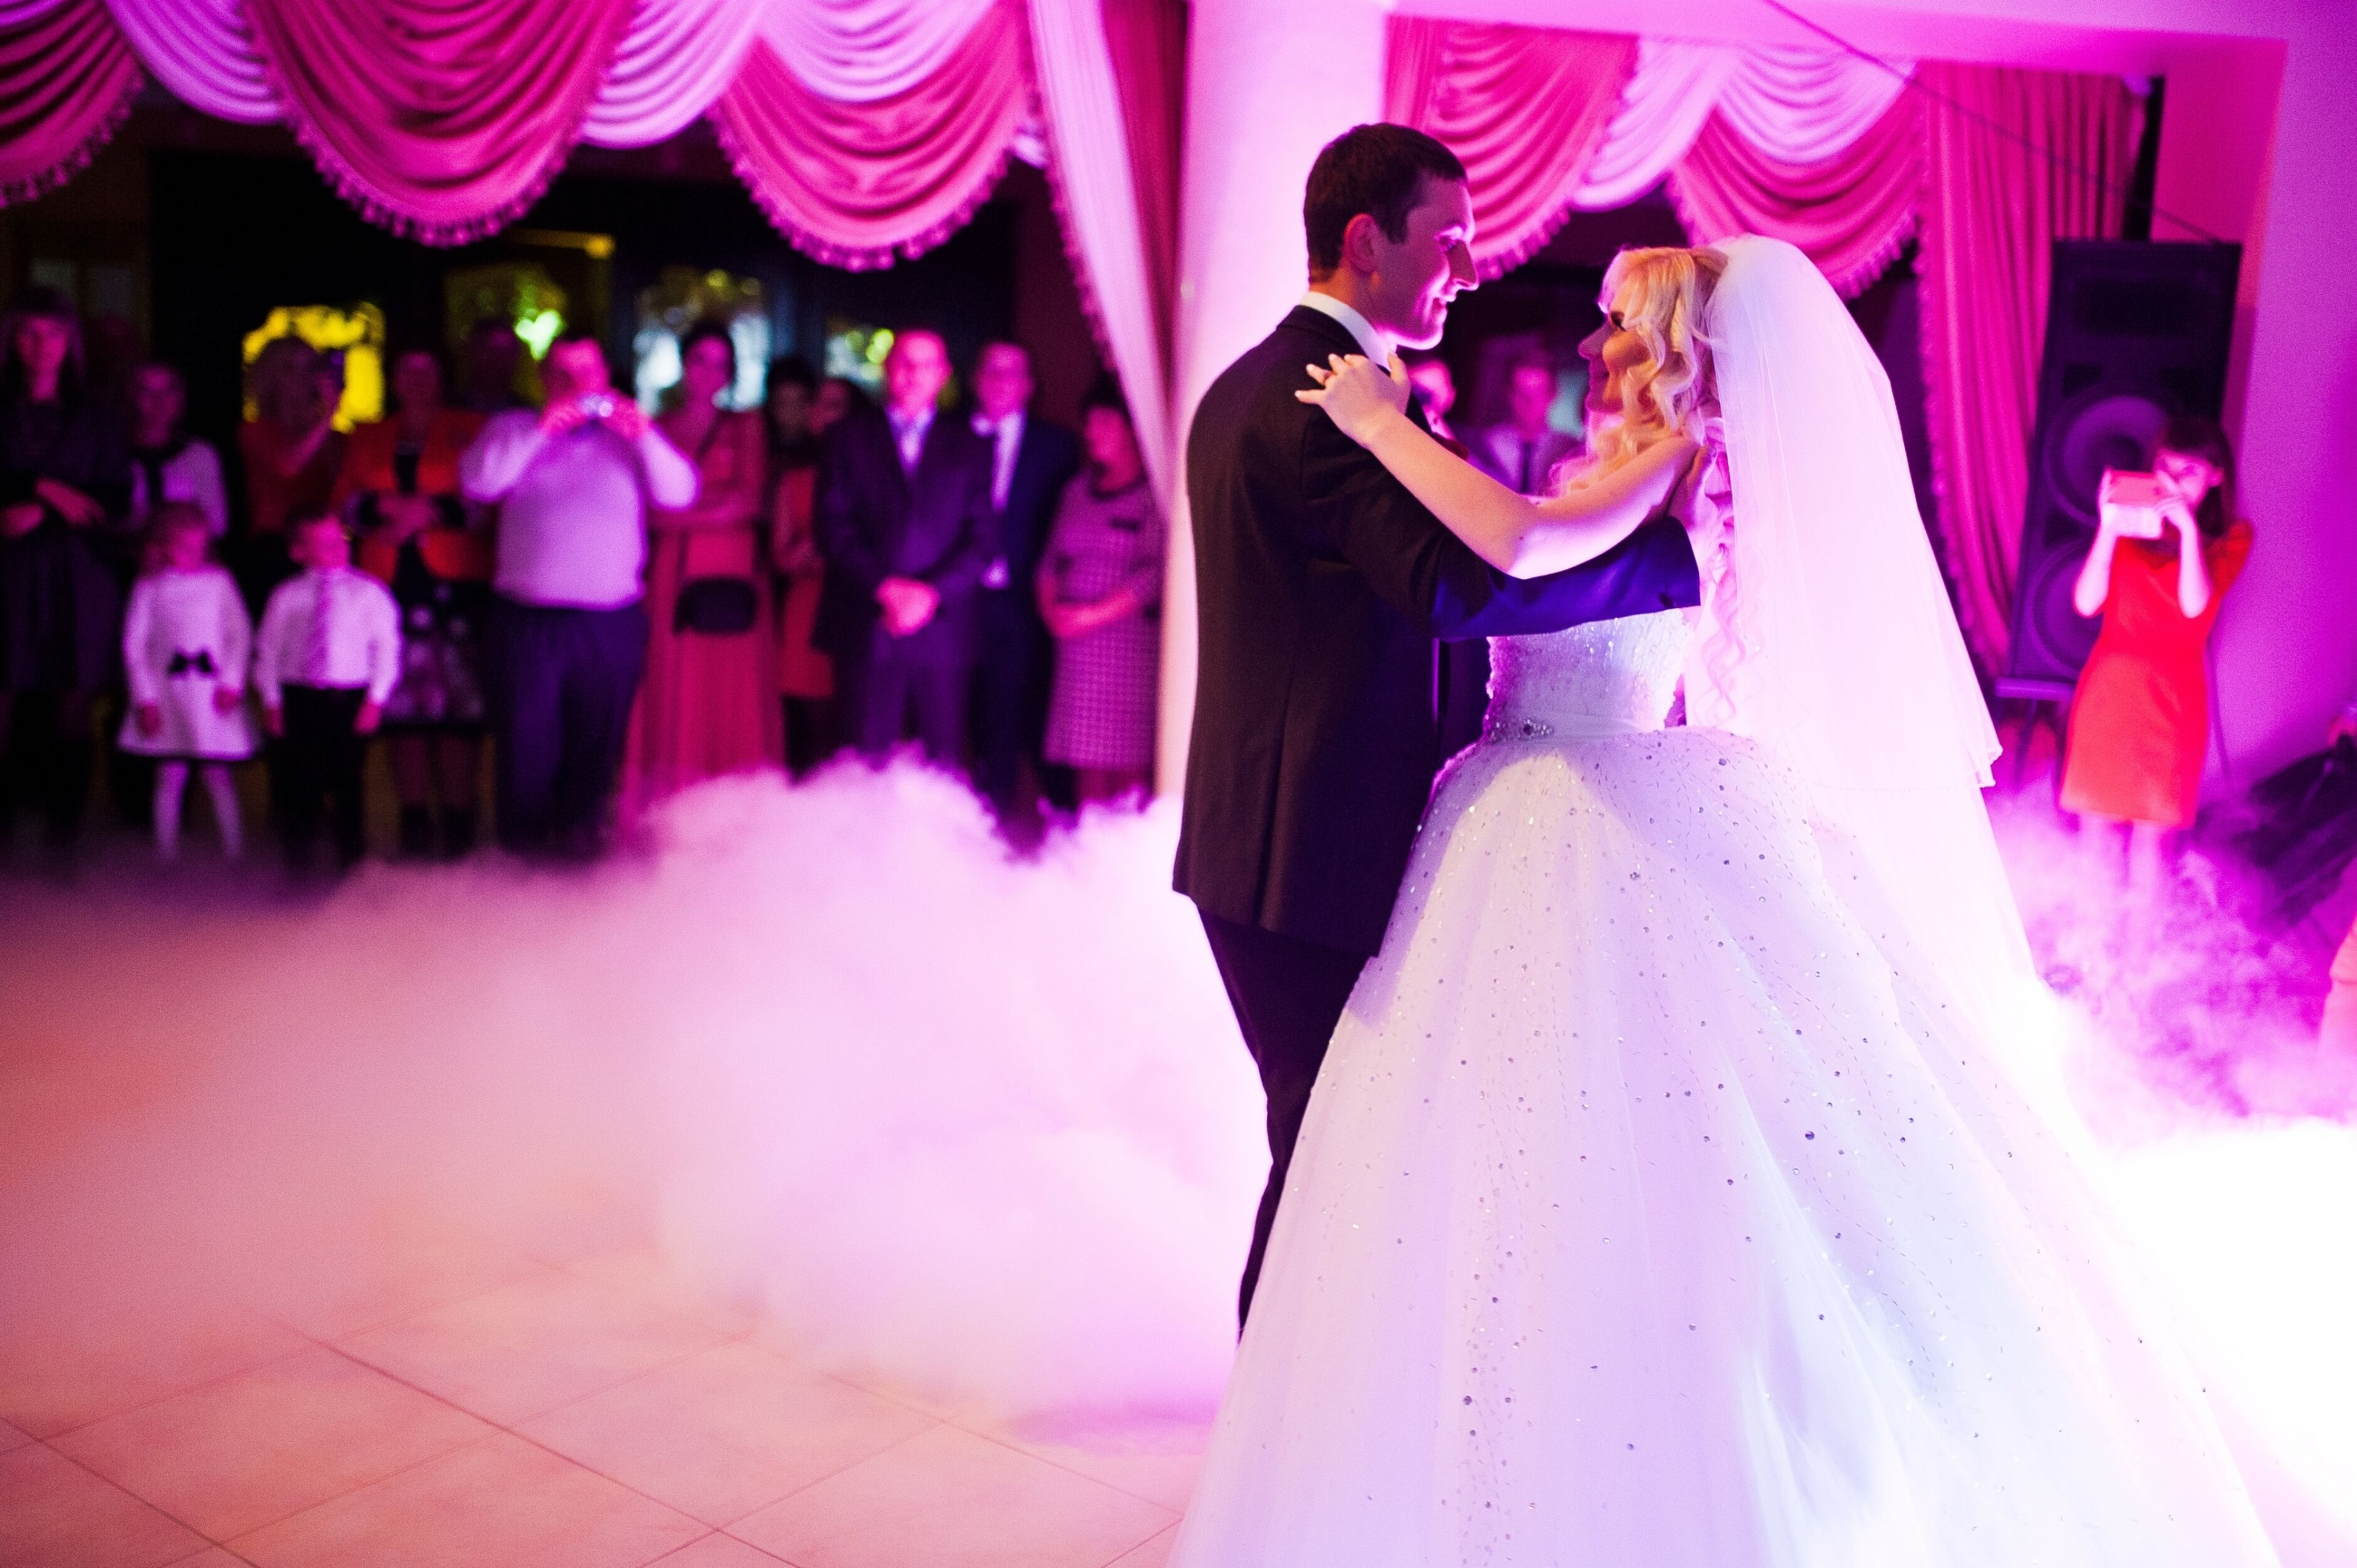 Wedding Videographers in Las Vegas, NV - The Knot